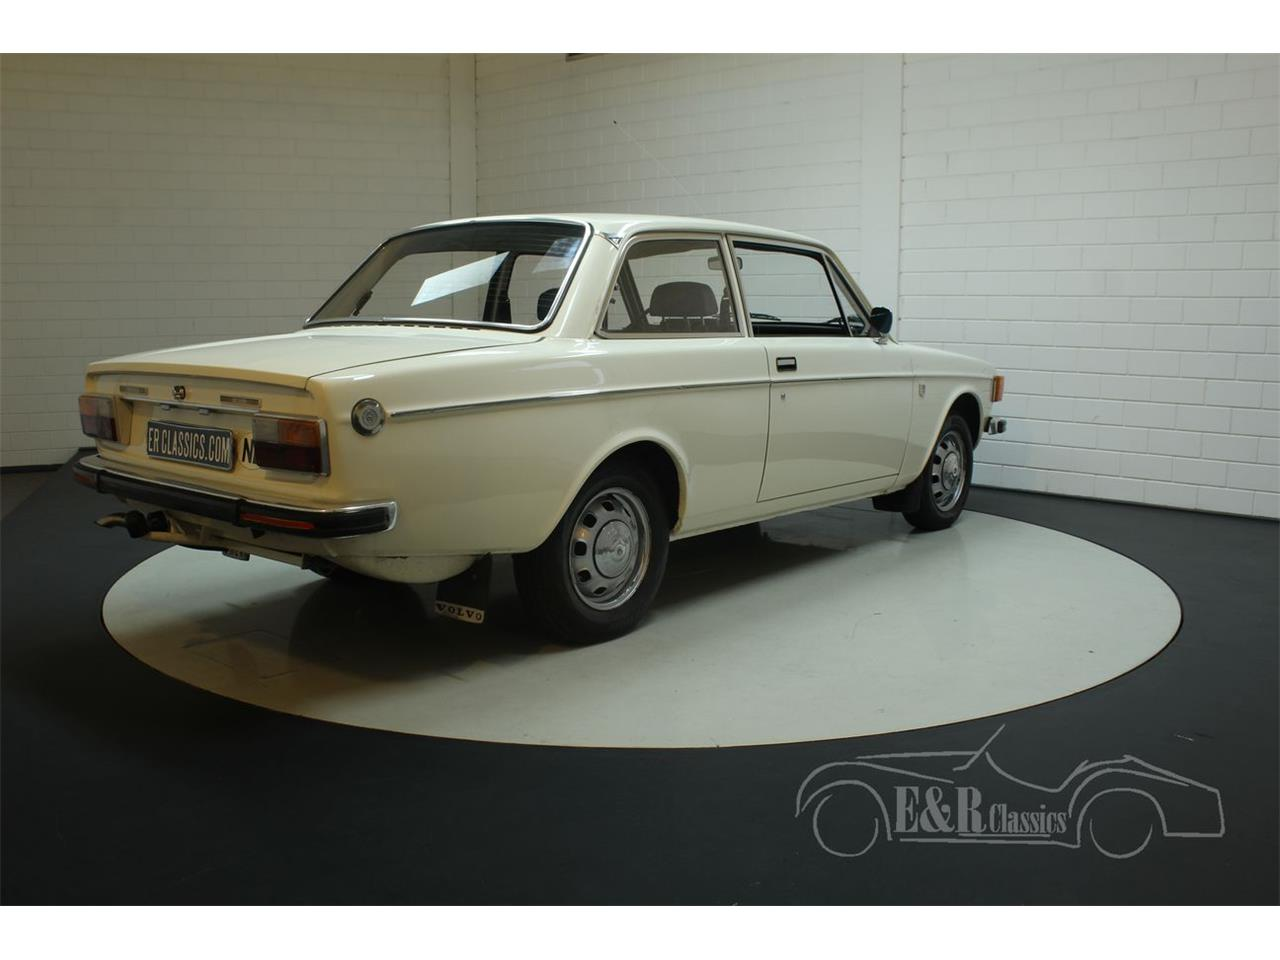 Large Picture of '72 Volvo 142 located in Waalwijk noord brabant - $13,400.00 - Q3GJ